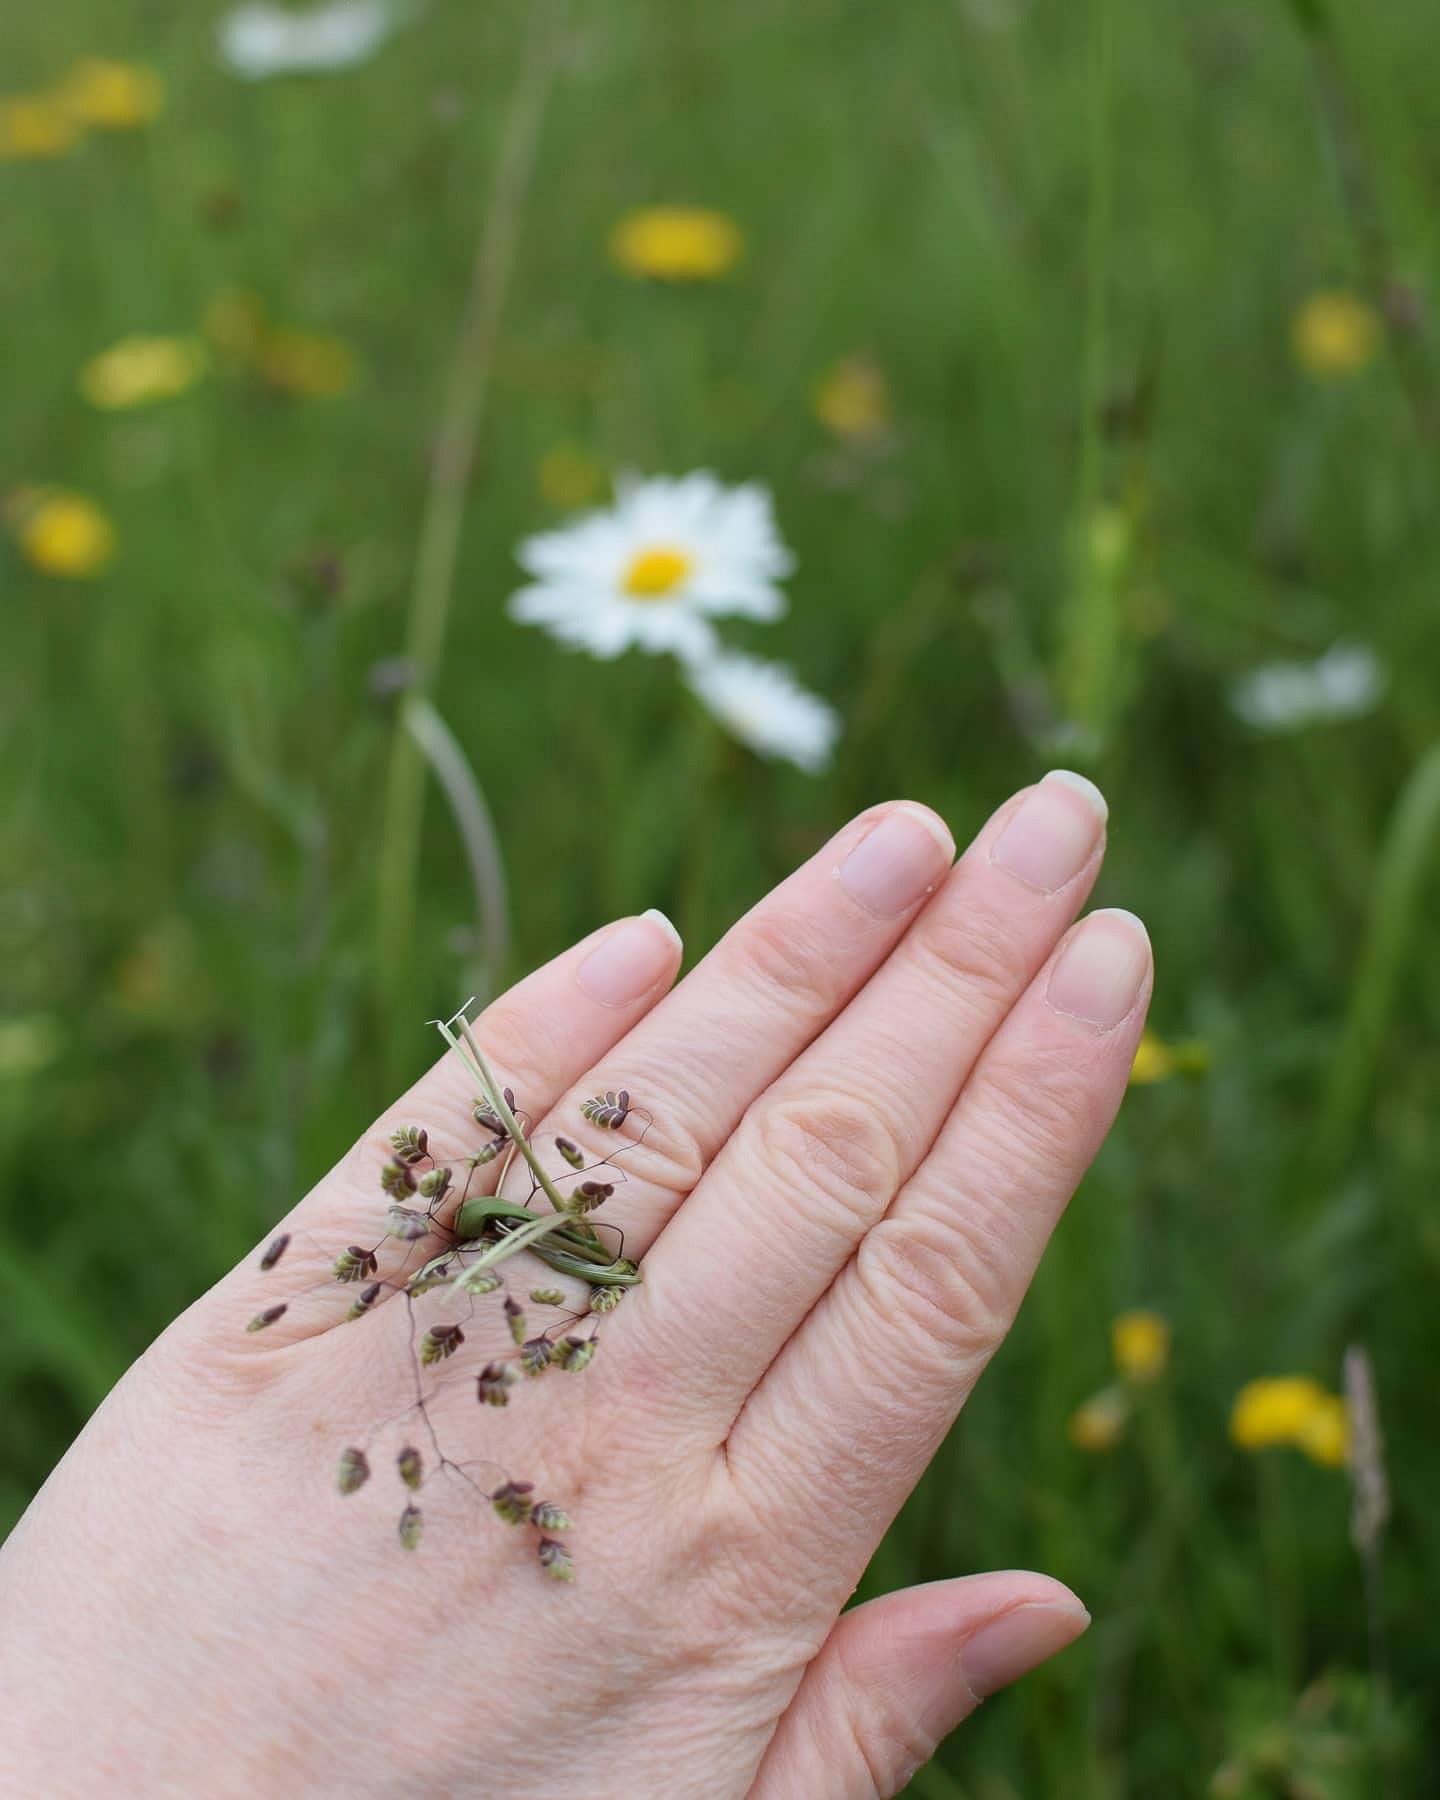 he proposed to me in the meadow at midsummer with a ring made of quaking grass